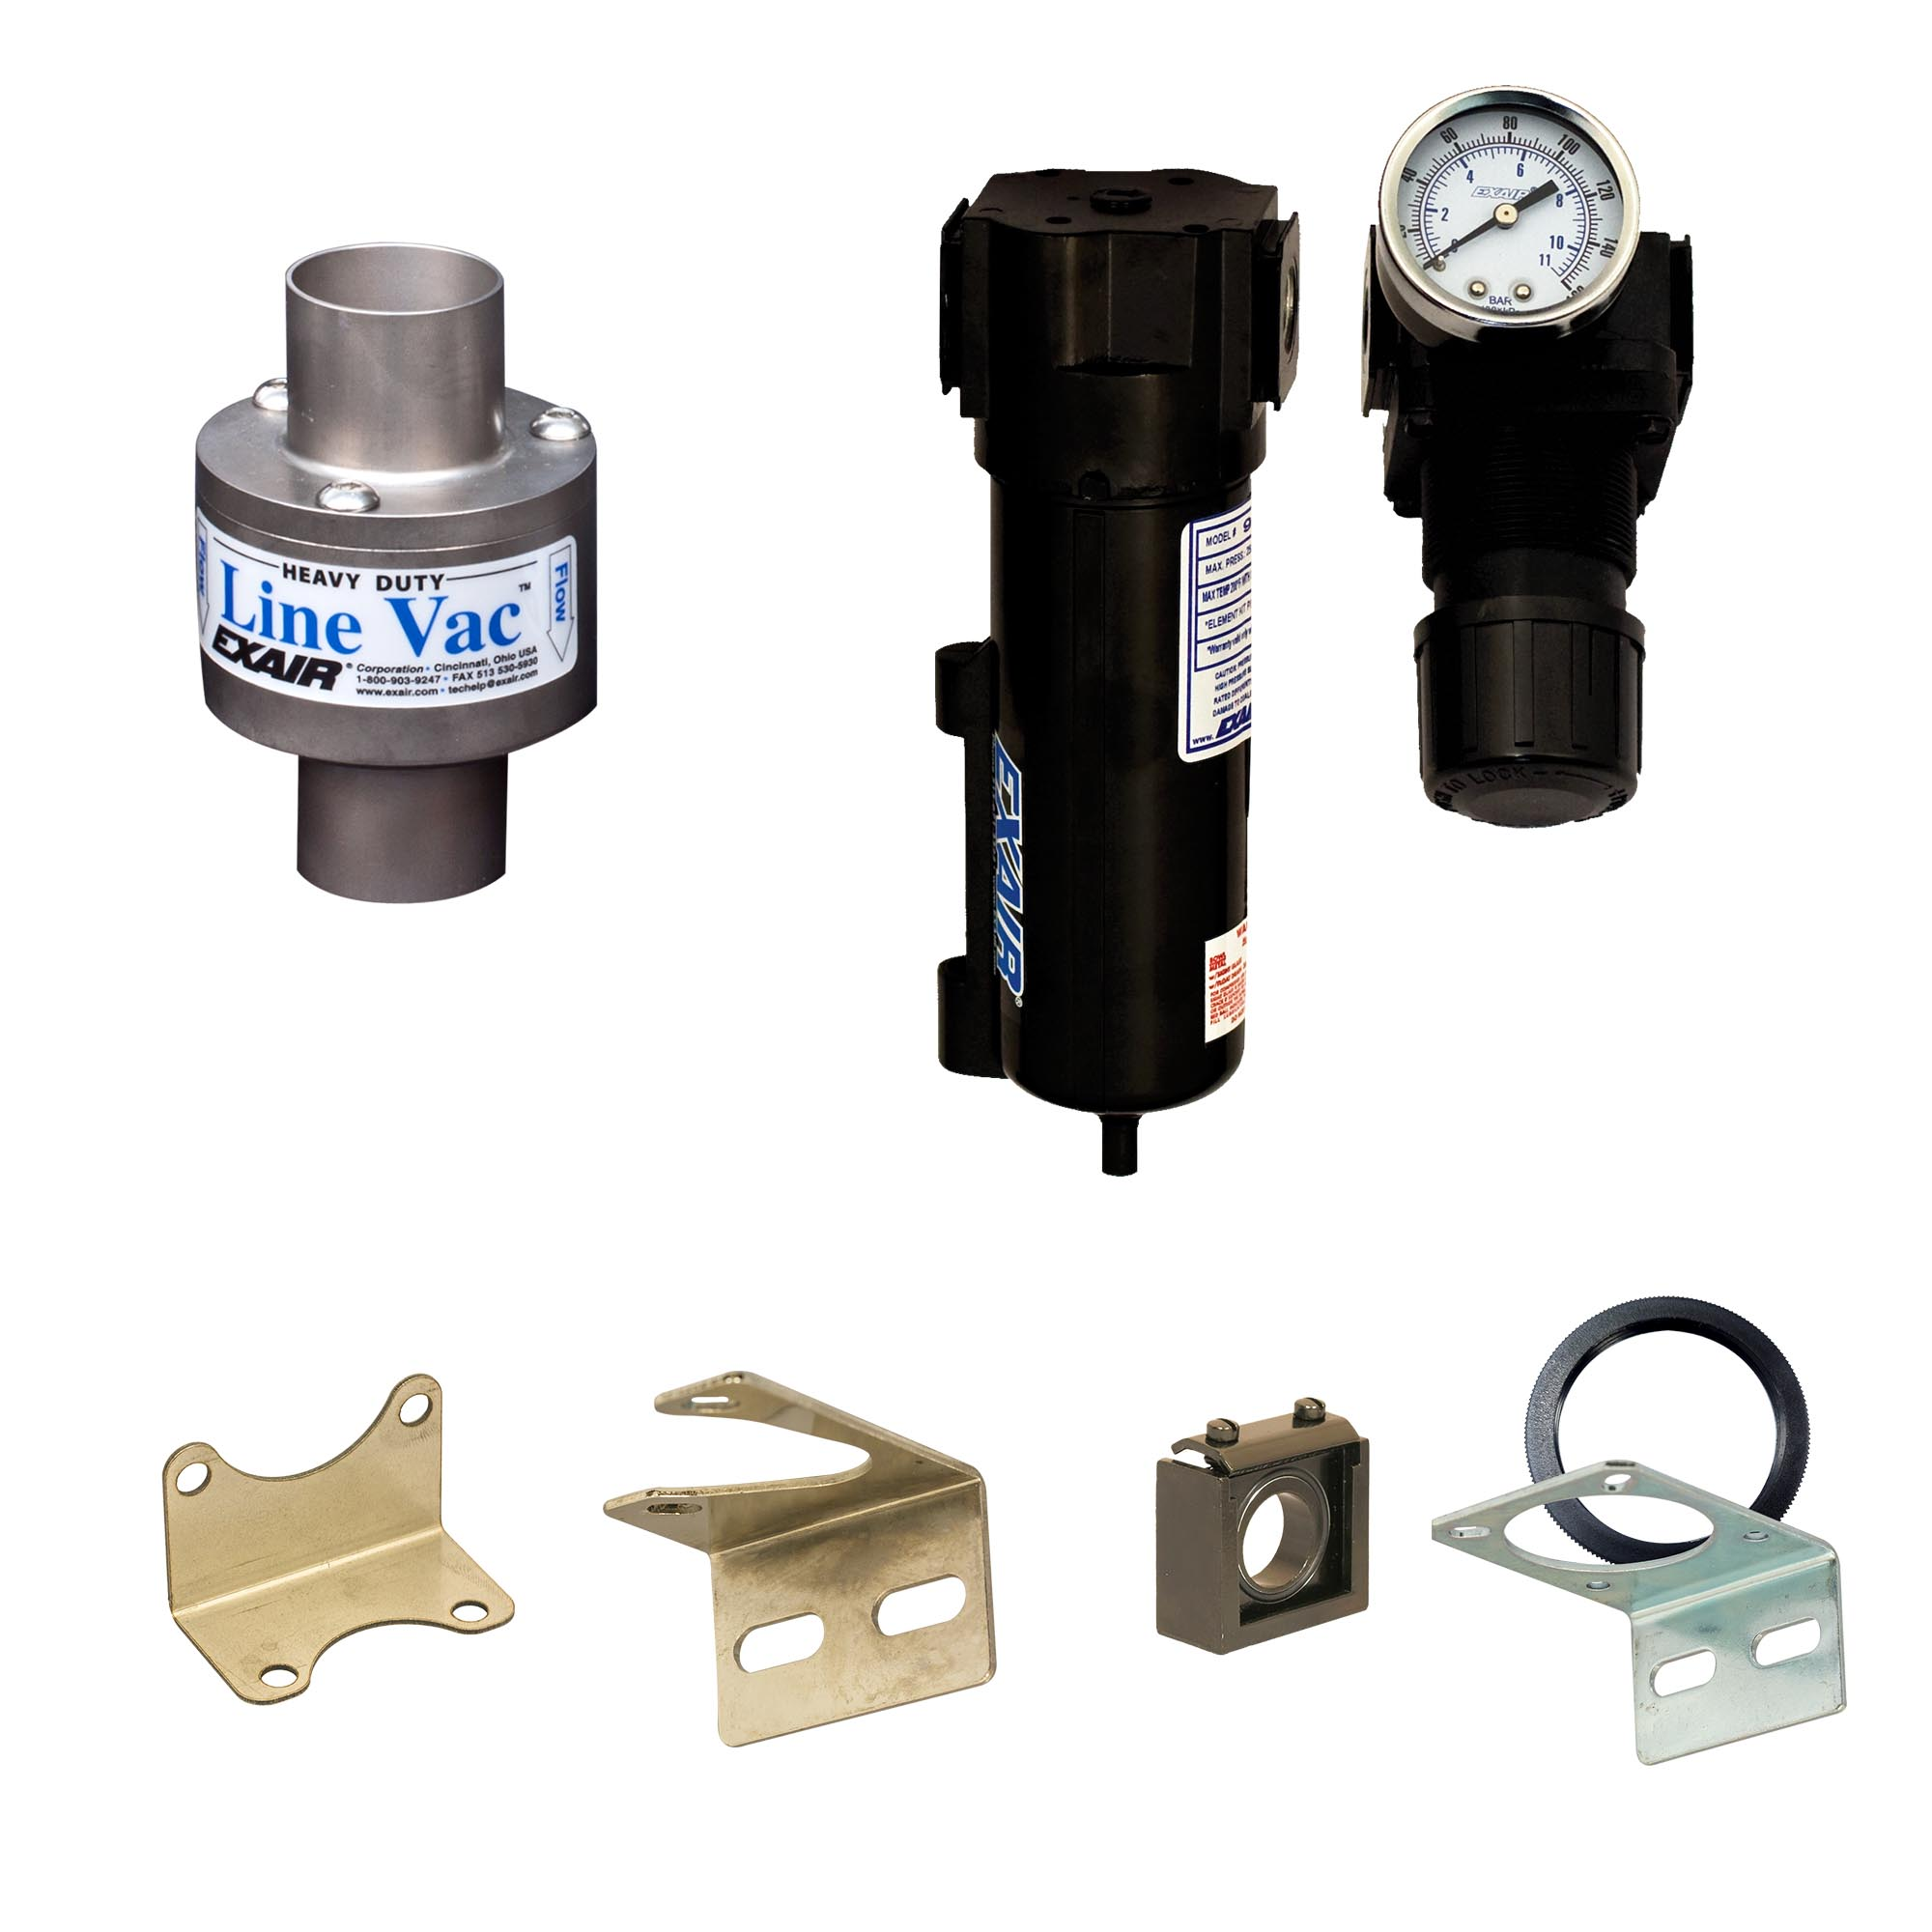 Kits are also available that come with a mounting bracket, filter separator and pressure regulator with coupler.